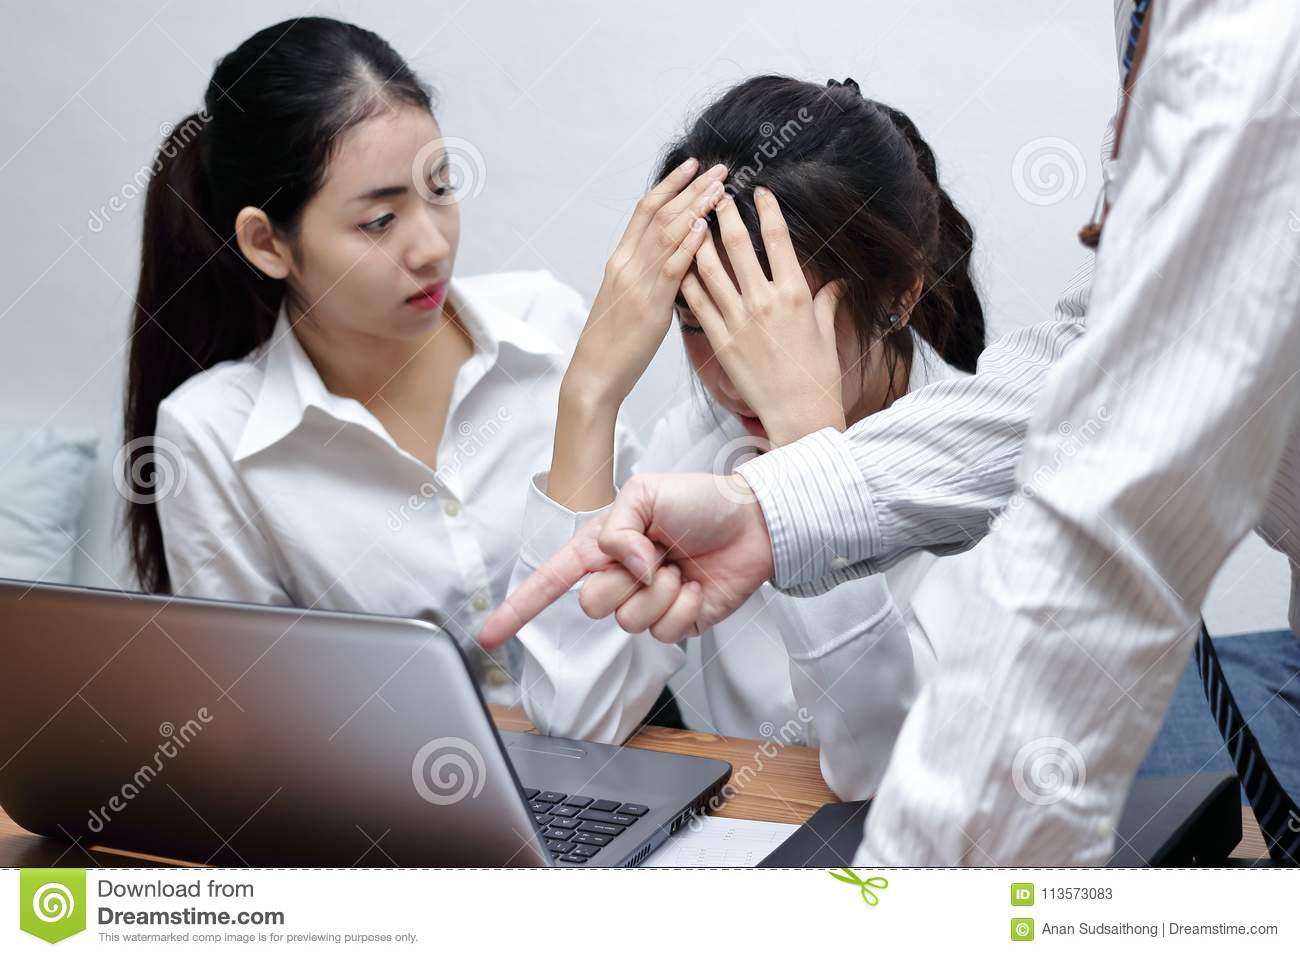 Hands of angry male boss pointing fingers and blaming young Asian employee  in office.